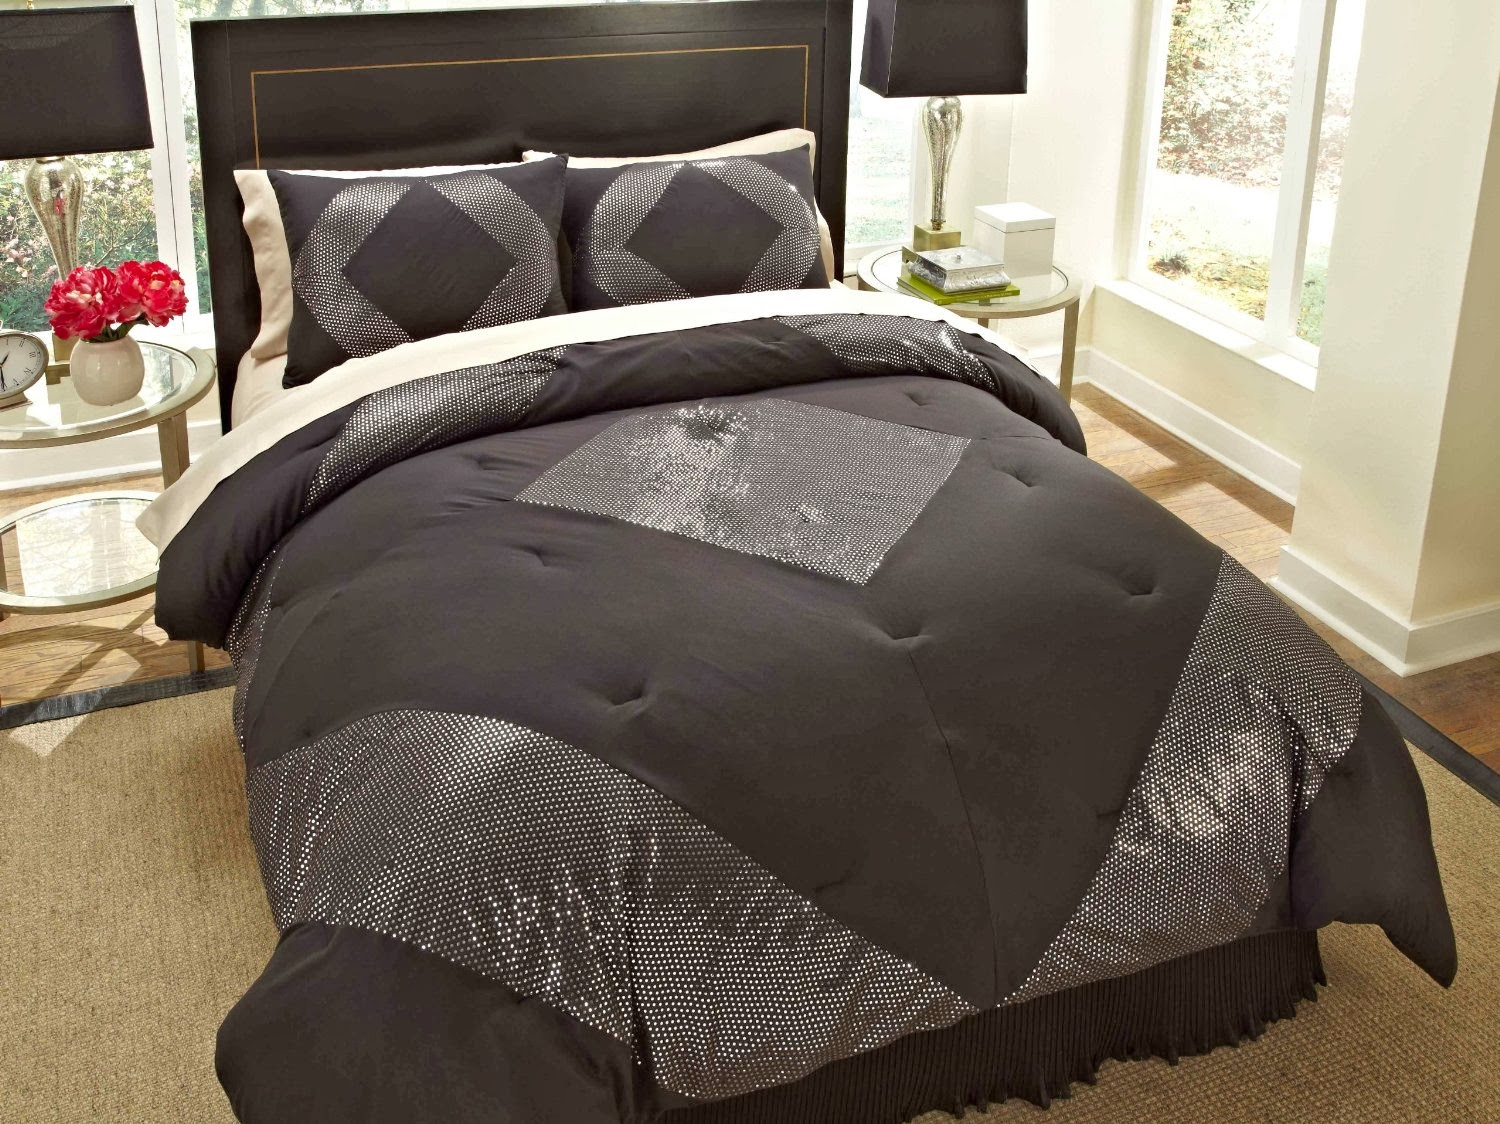 buy best and beautiful bedding sets on sale black and silver  - metallic animal  piece comforter set in black  silver